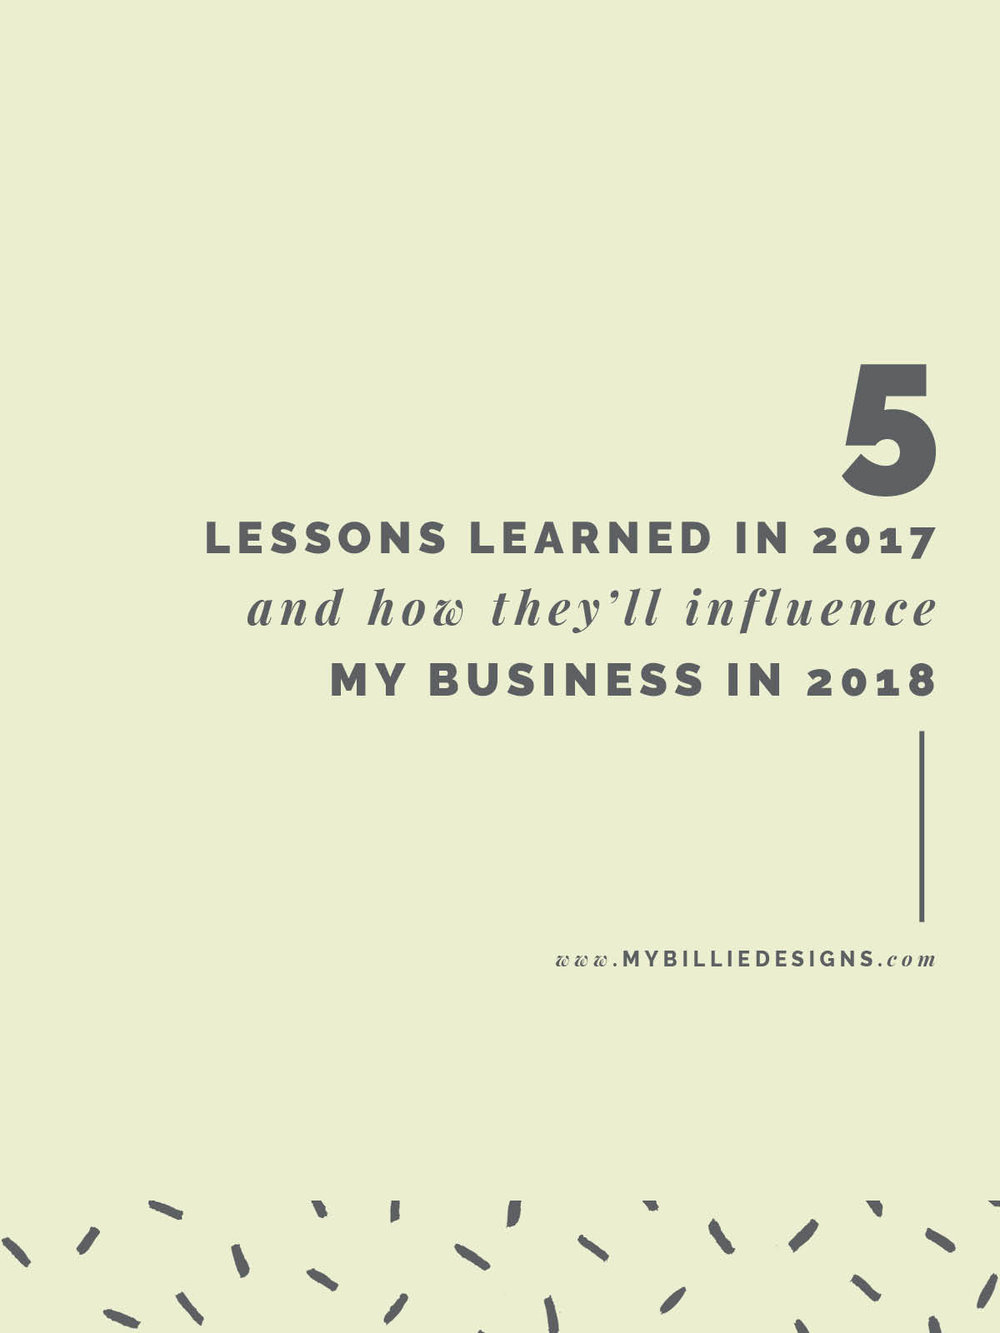 5 Lessons Learned in 2017 And How They'll Influence My Business in 2018